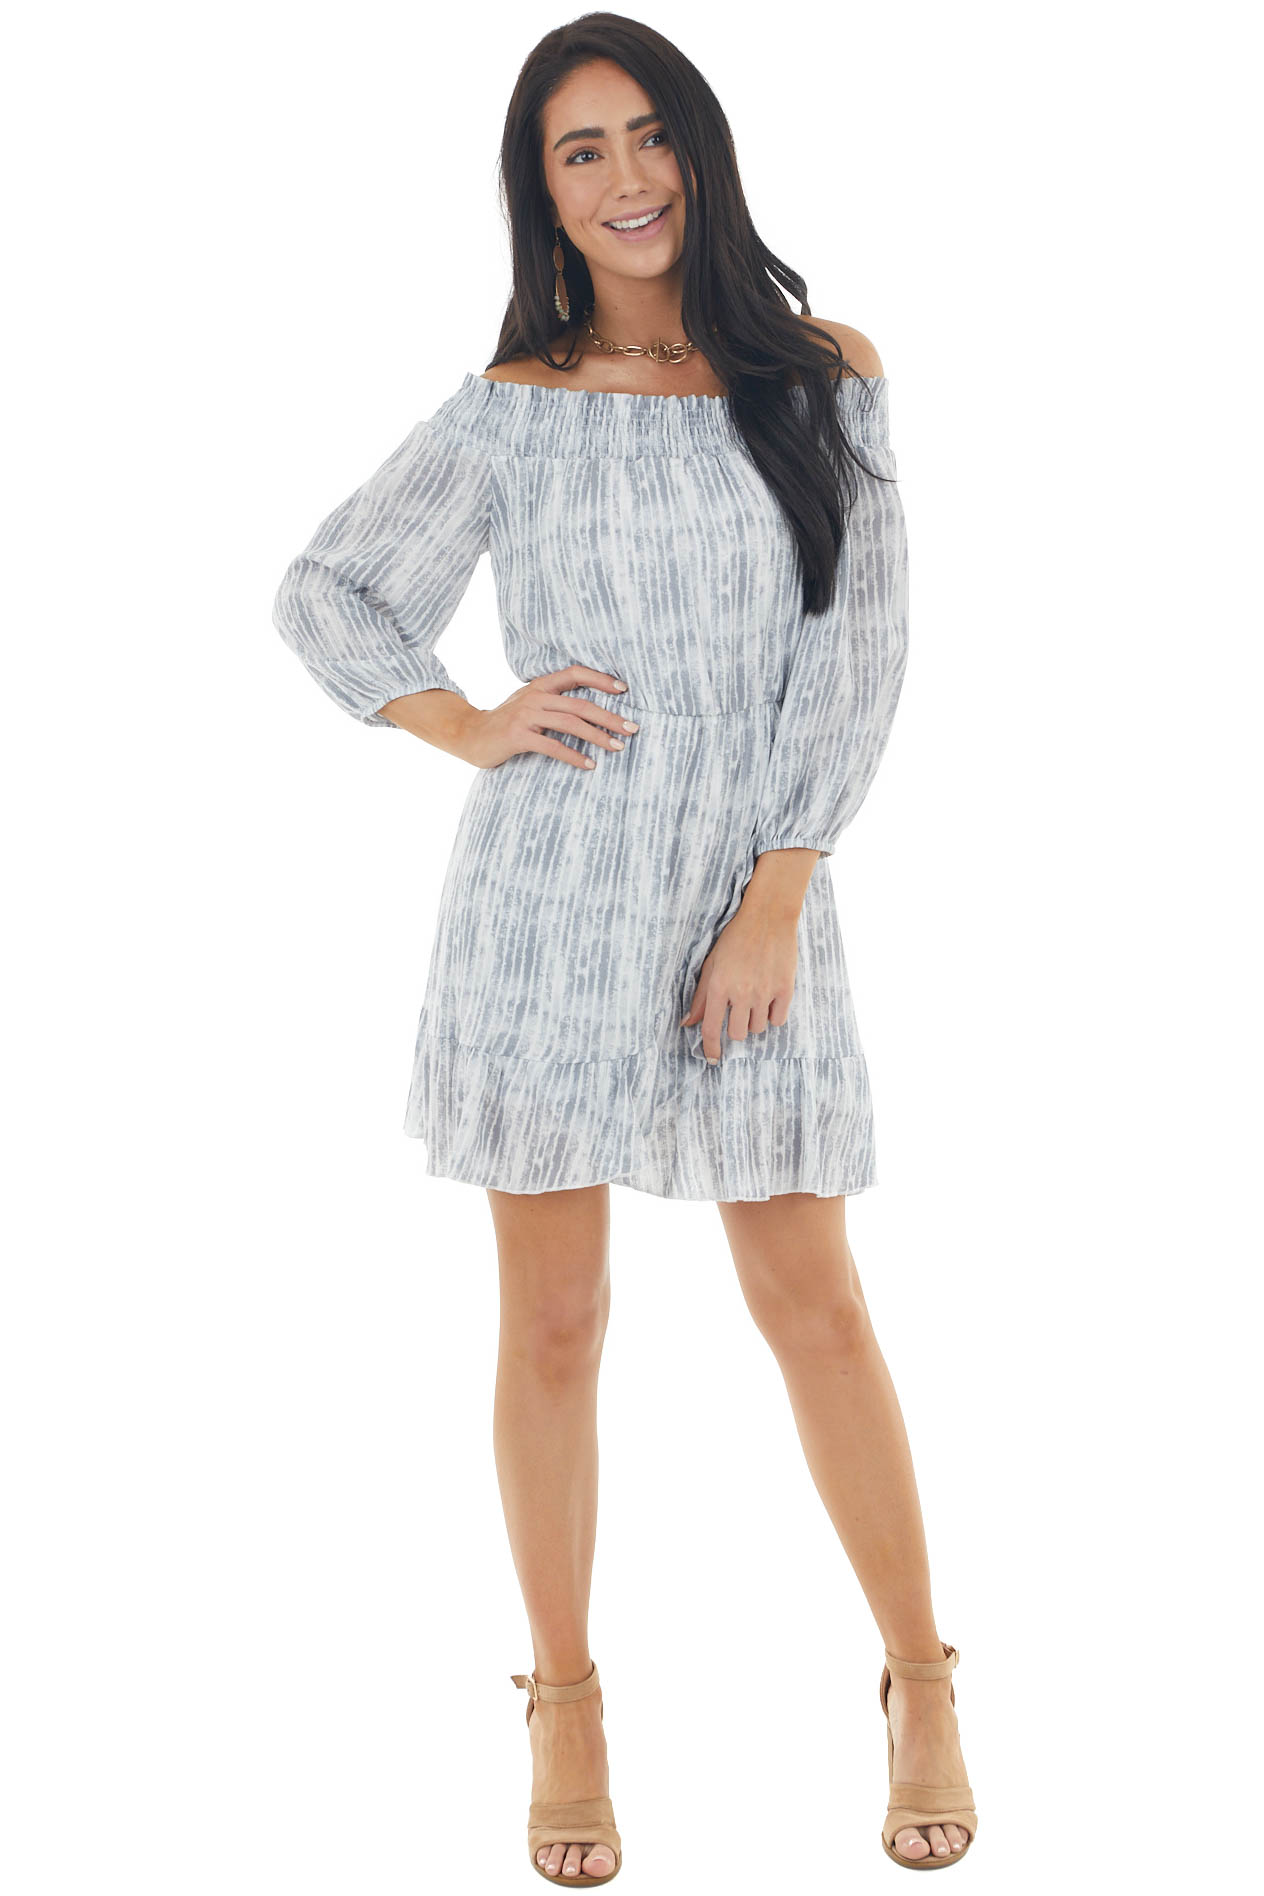 Steel and Ivory Tie Dye Striped Off the Shoulder Mini Dress